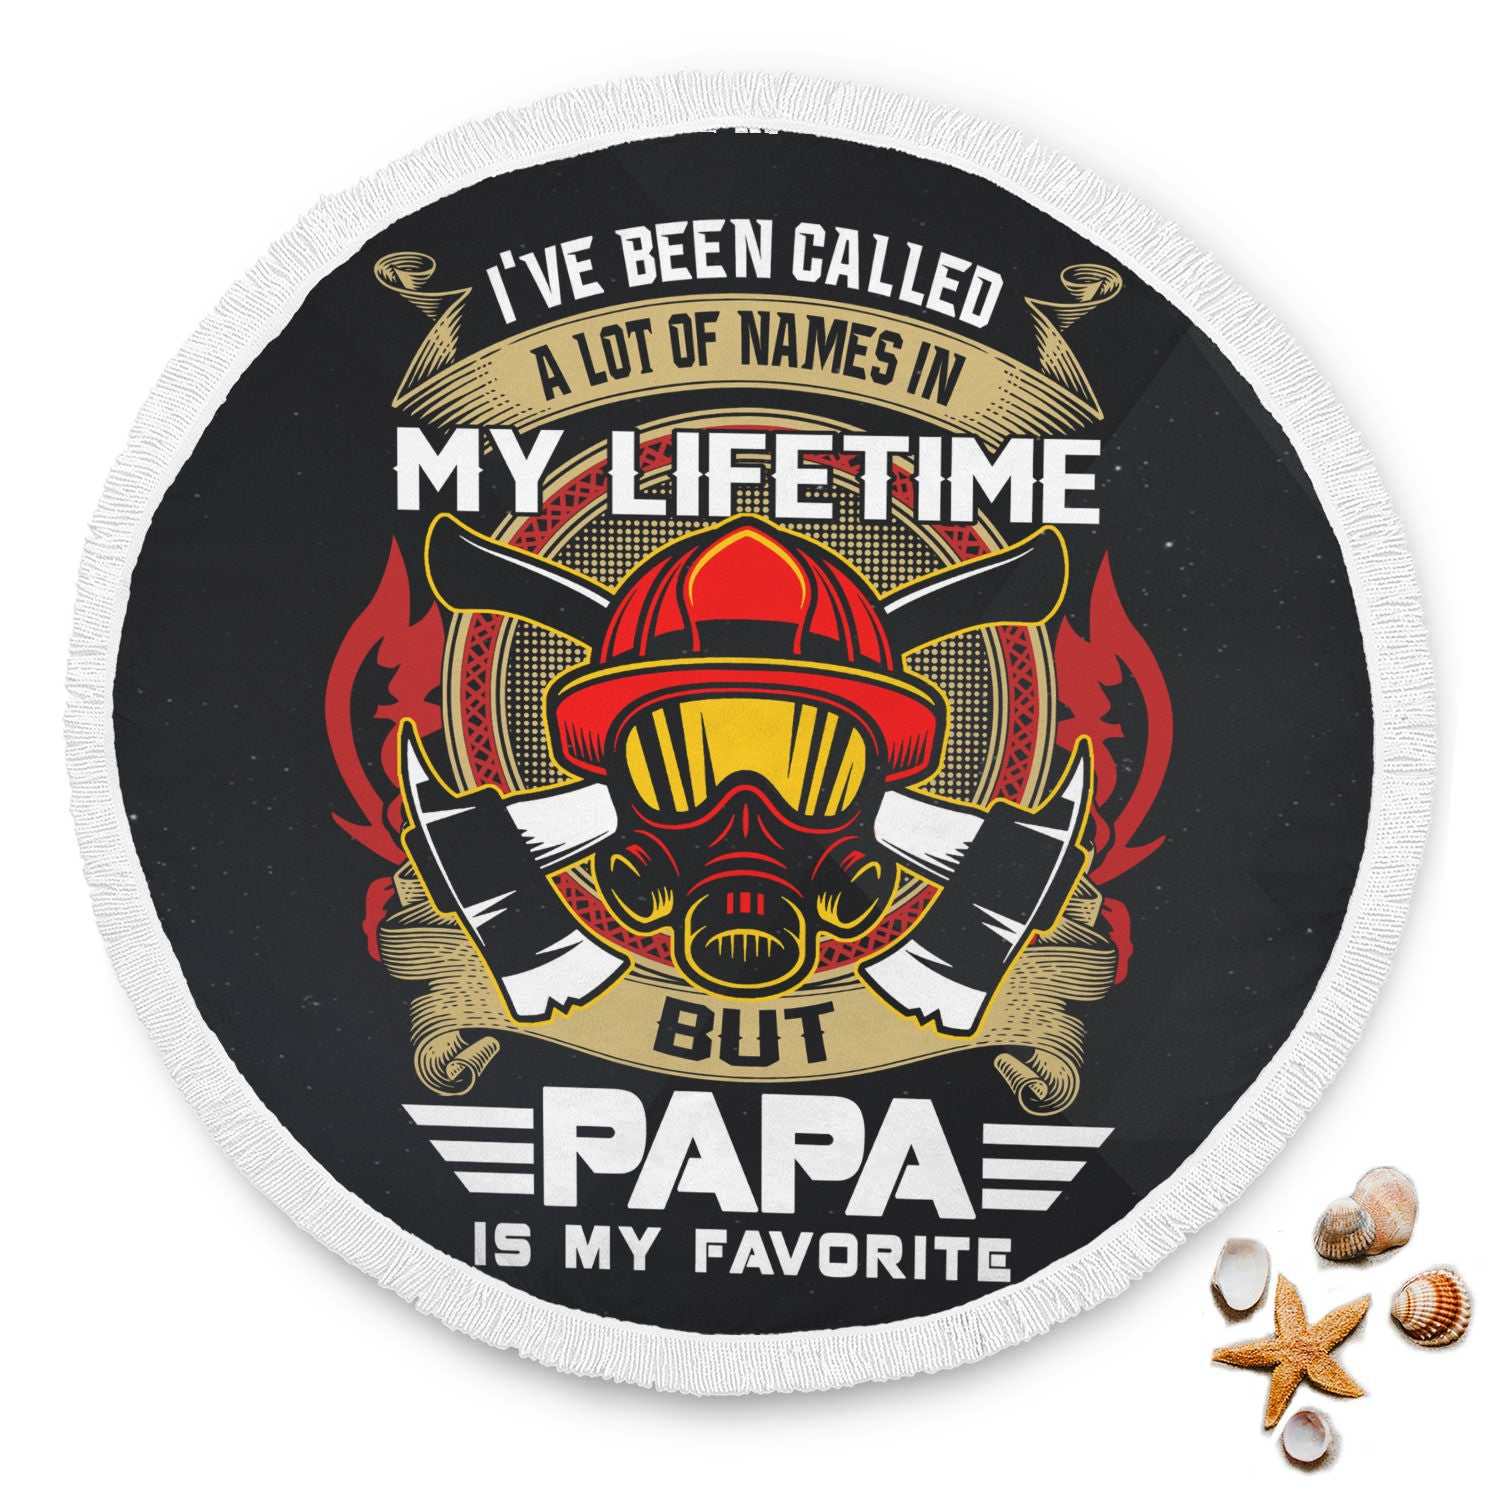 VIRA ROUND BEACH BLANKET FOR FIREFIGHTER papa THIS SUMMER